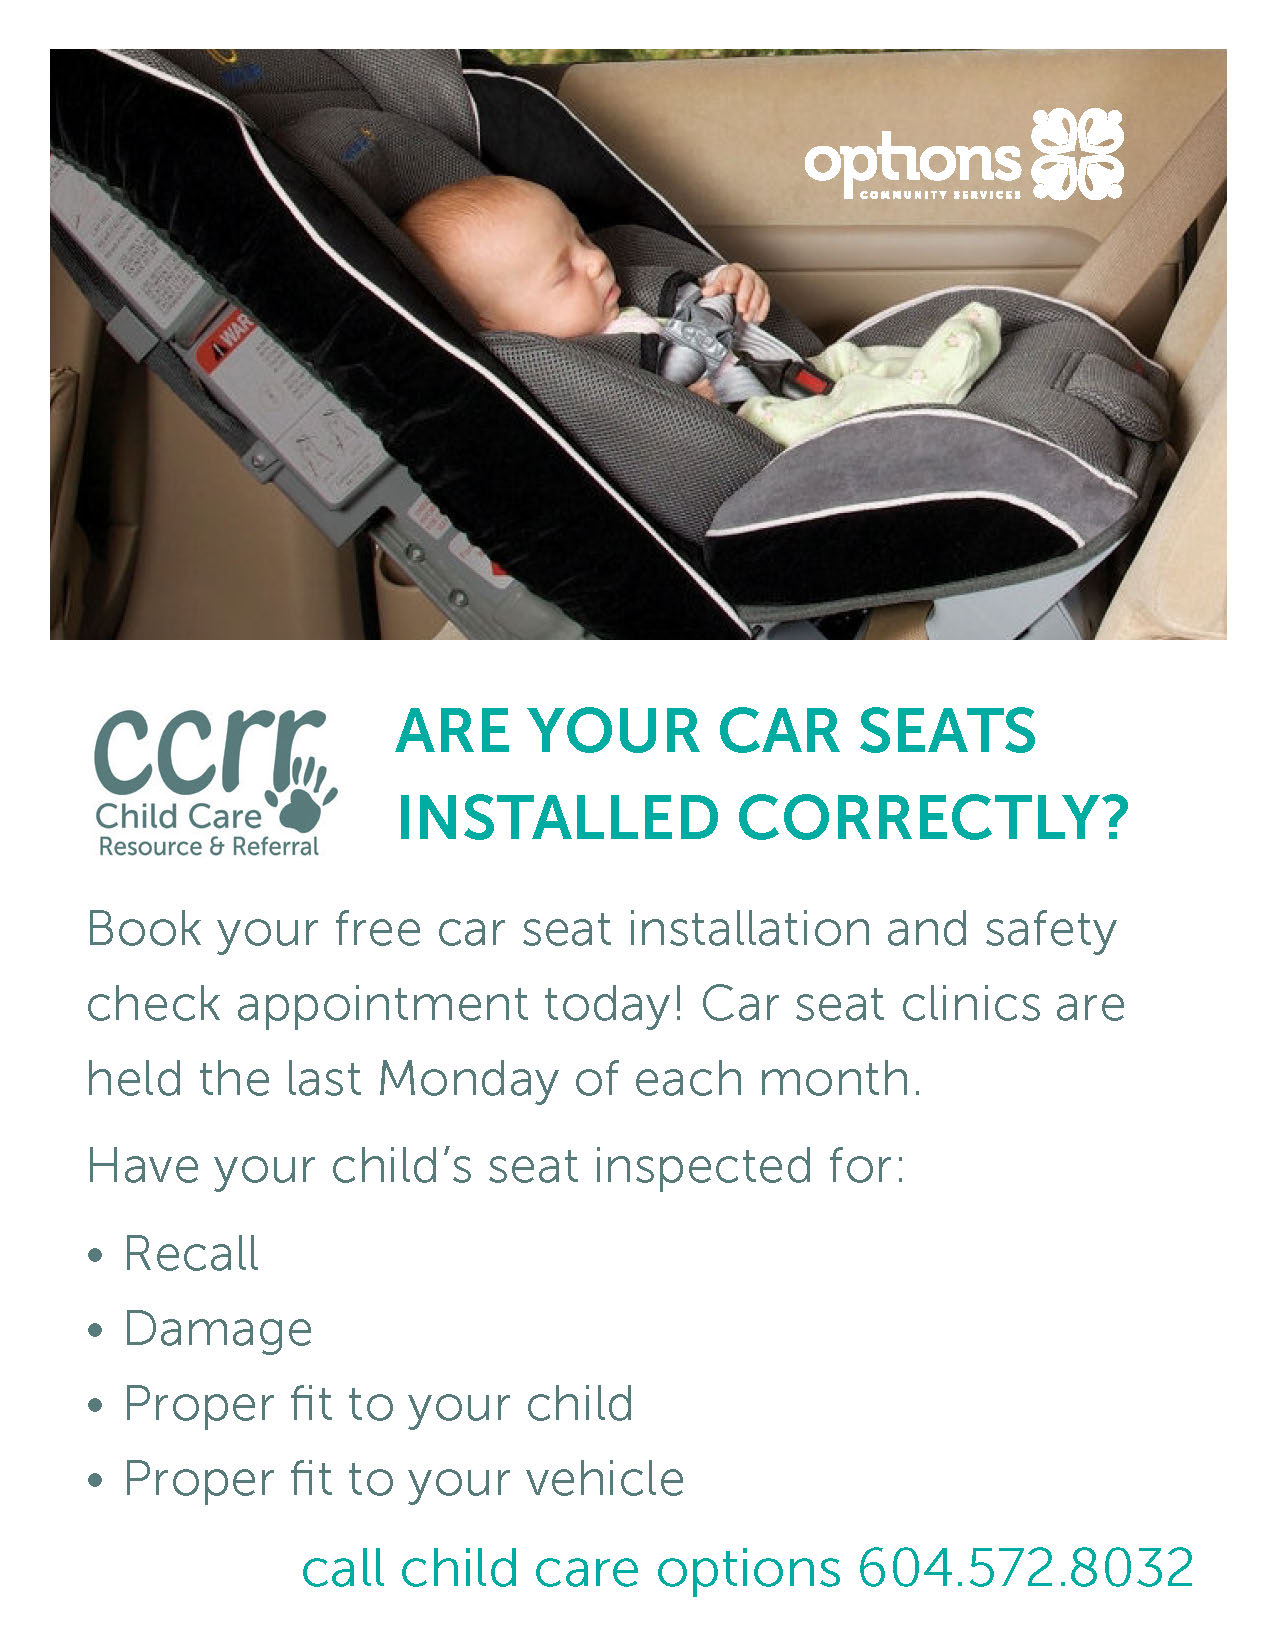 Car Seat Clinics - Child Care Options